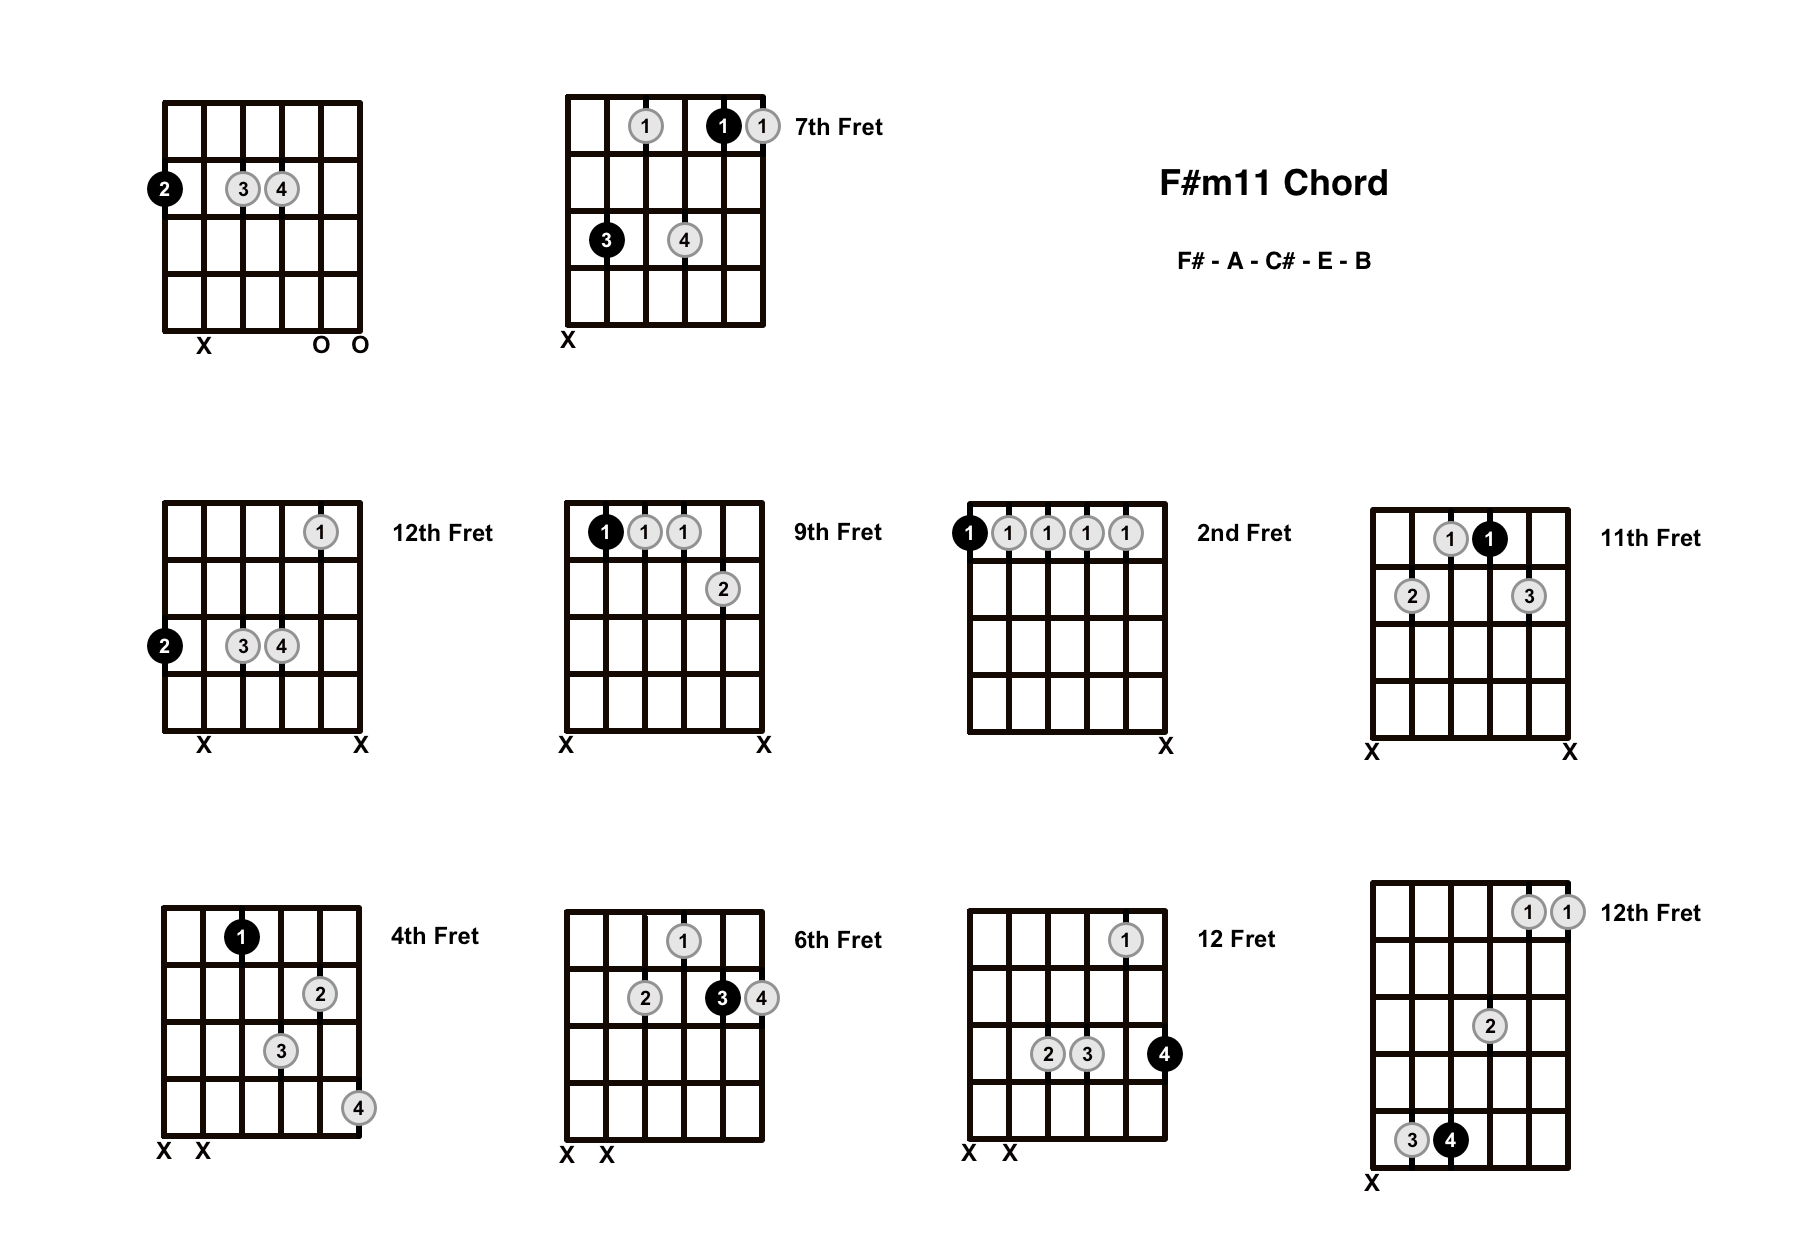 F#m11 Chord On The Guitar (F Sharp minor 11) – Diagrams, Finger Positions and Theory